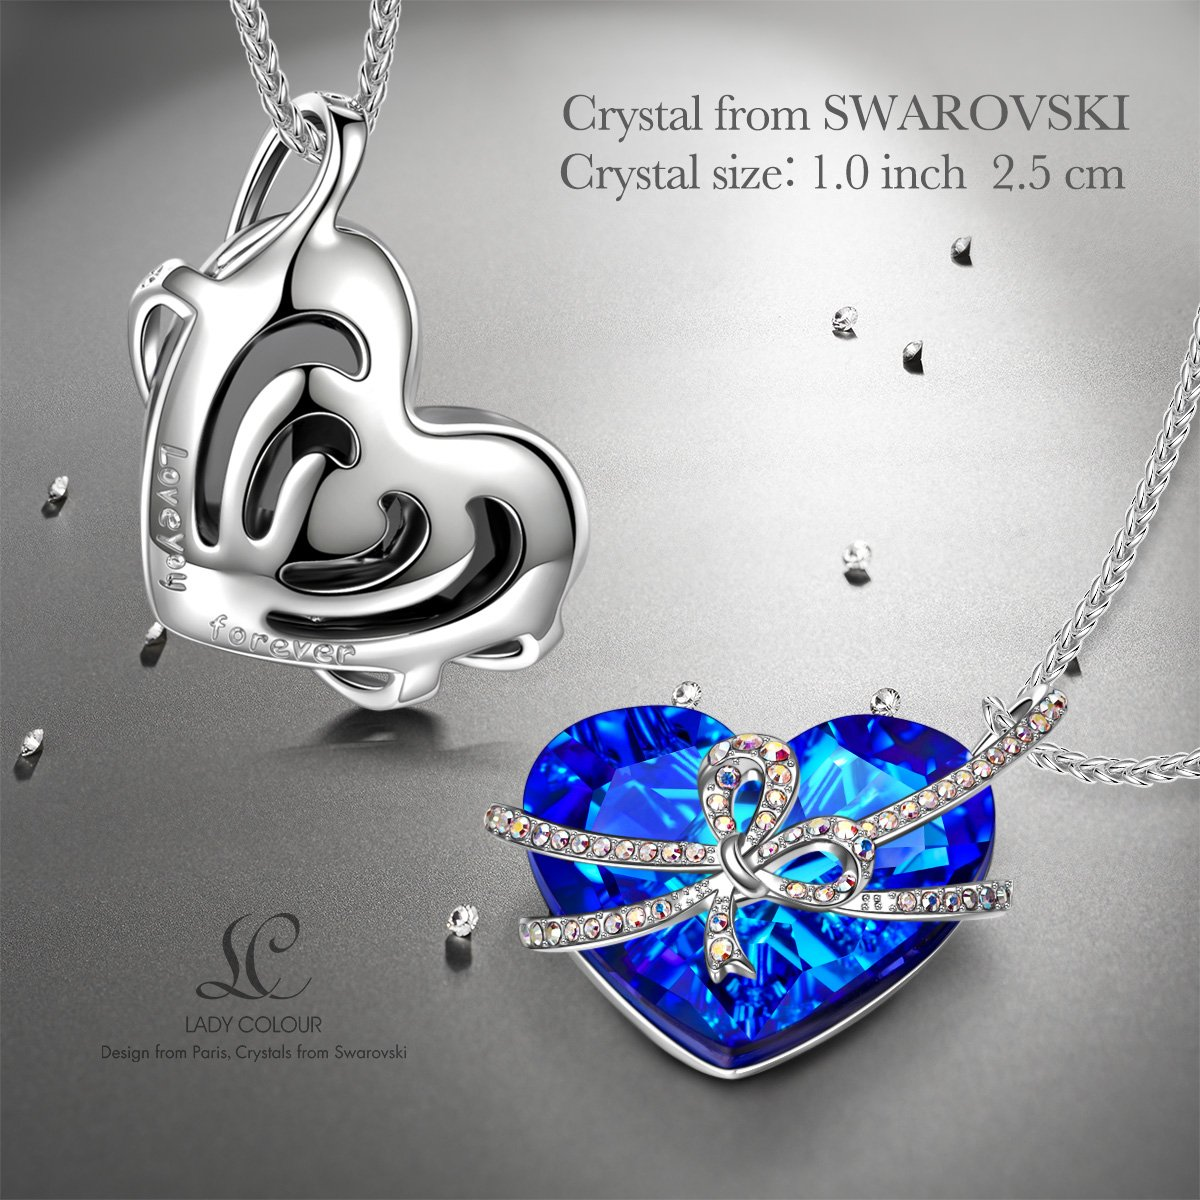 LADY COLOUR Sapphire Heart Pendant Necklace Made with Swarovski Crystals Romantic Present for Her Swarovski Crystal Necklace for Women NAG05786BB